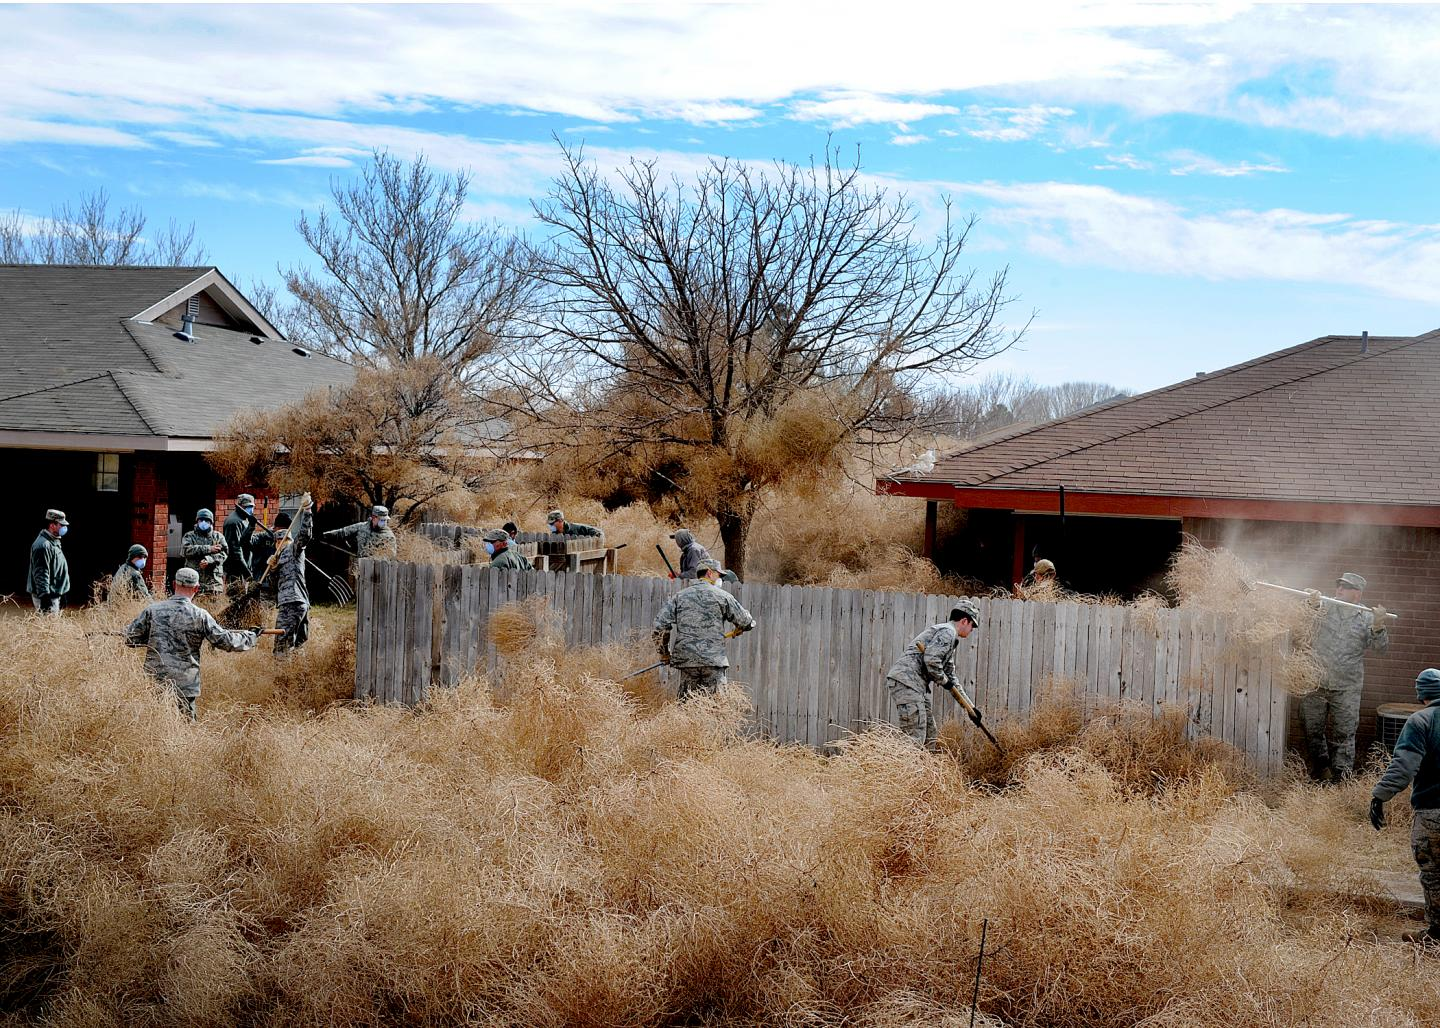 Commandos from Cannon Air Force Base, N.M., clear tumbleweeds from a residential area in Clovis, N.M., 2014. / Credit: U.S. Air Force/Senior Airman Ericka Engblom